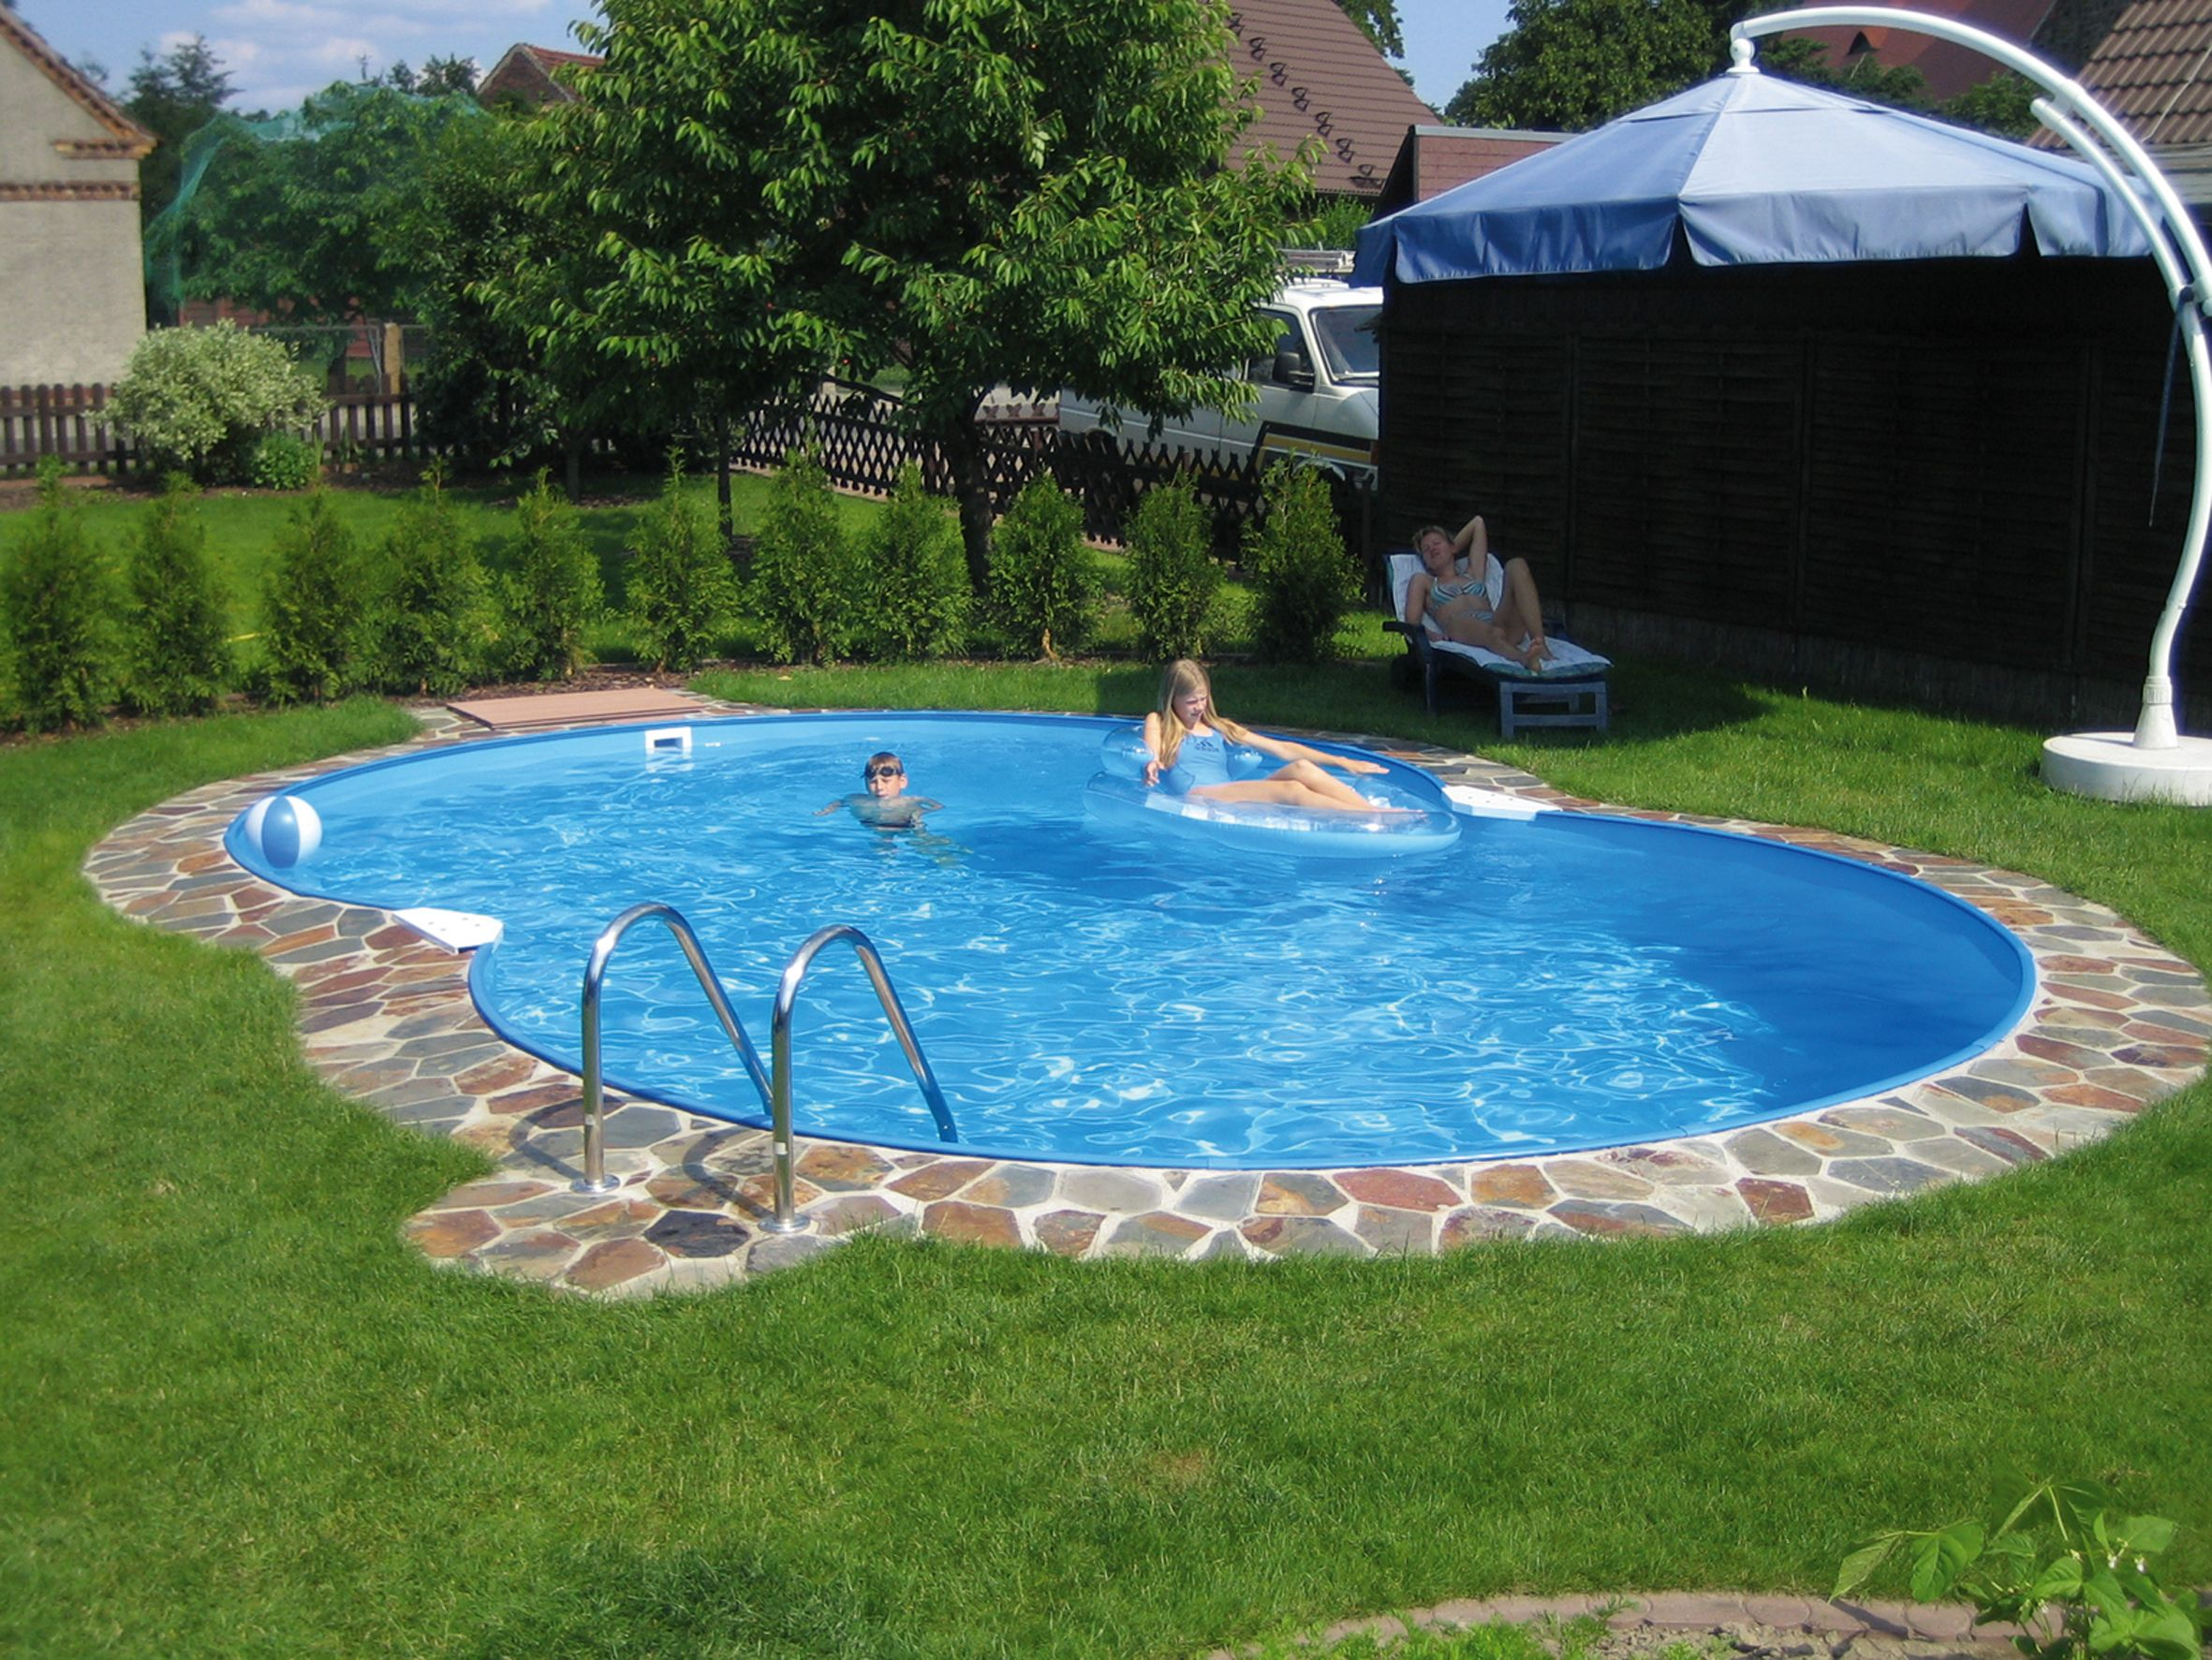 Inground Pool Landscaping Ideas swimming pool landscape design Backyard Landscaping Ideas Swimming Pool Design Read More At Wwwhomestheticsnet